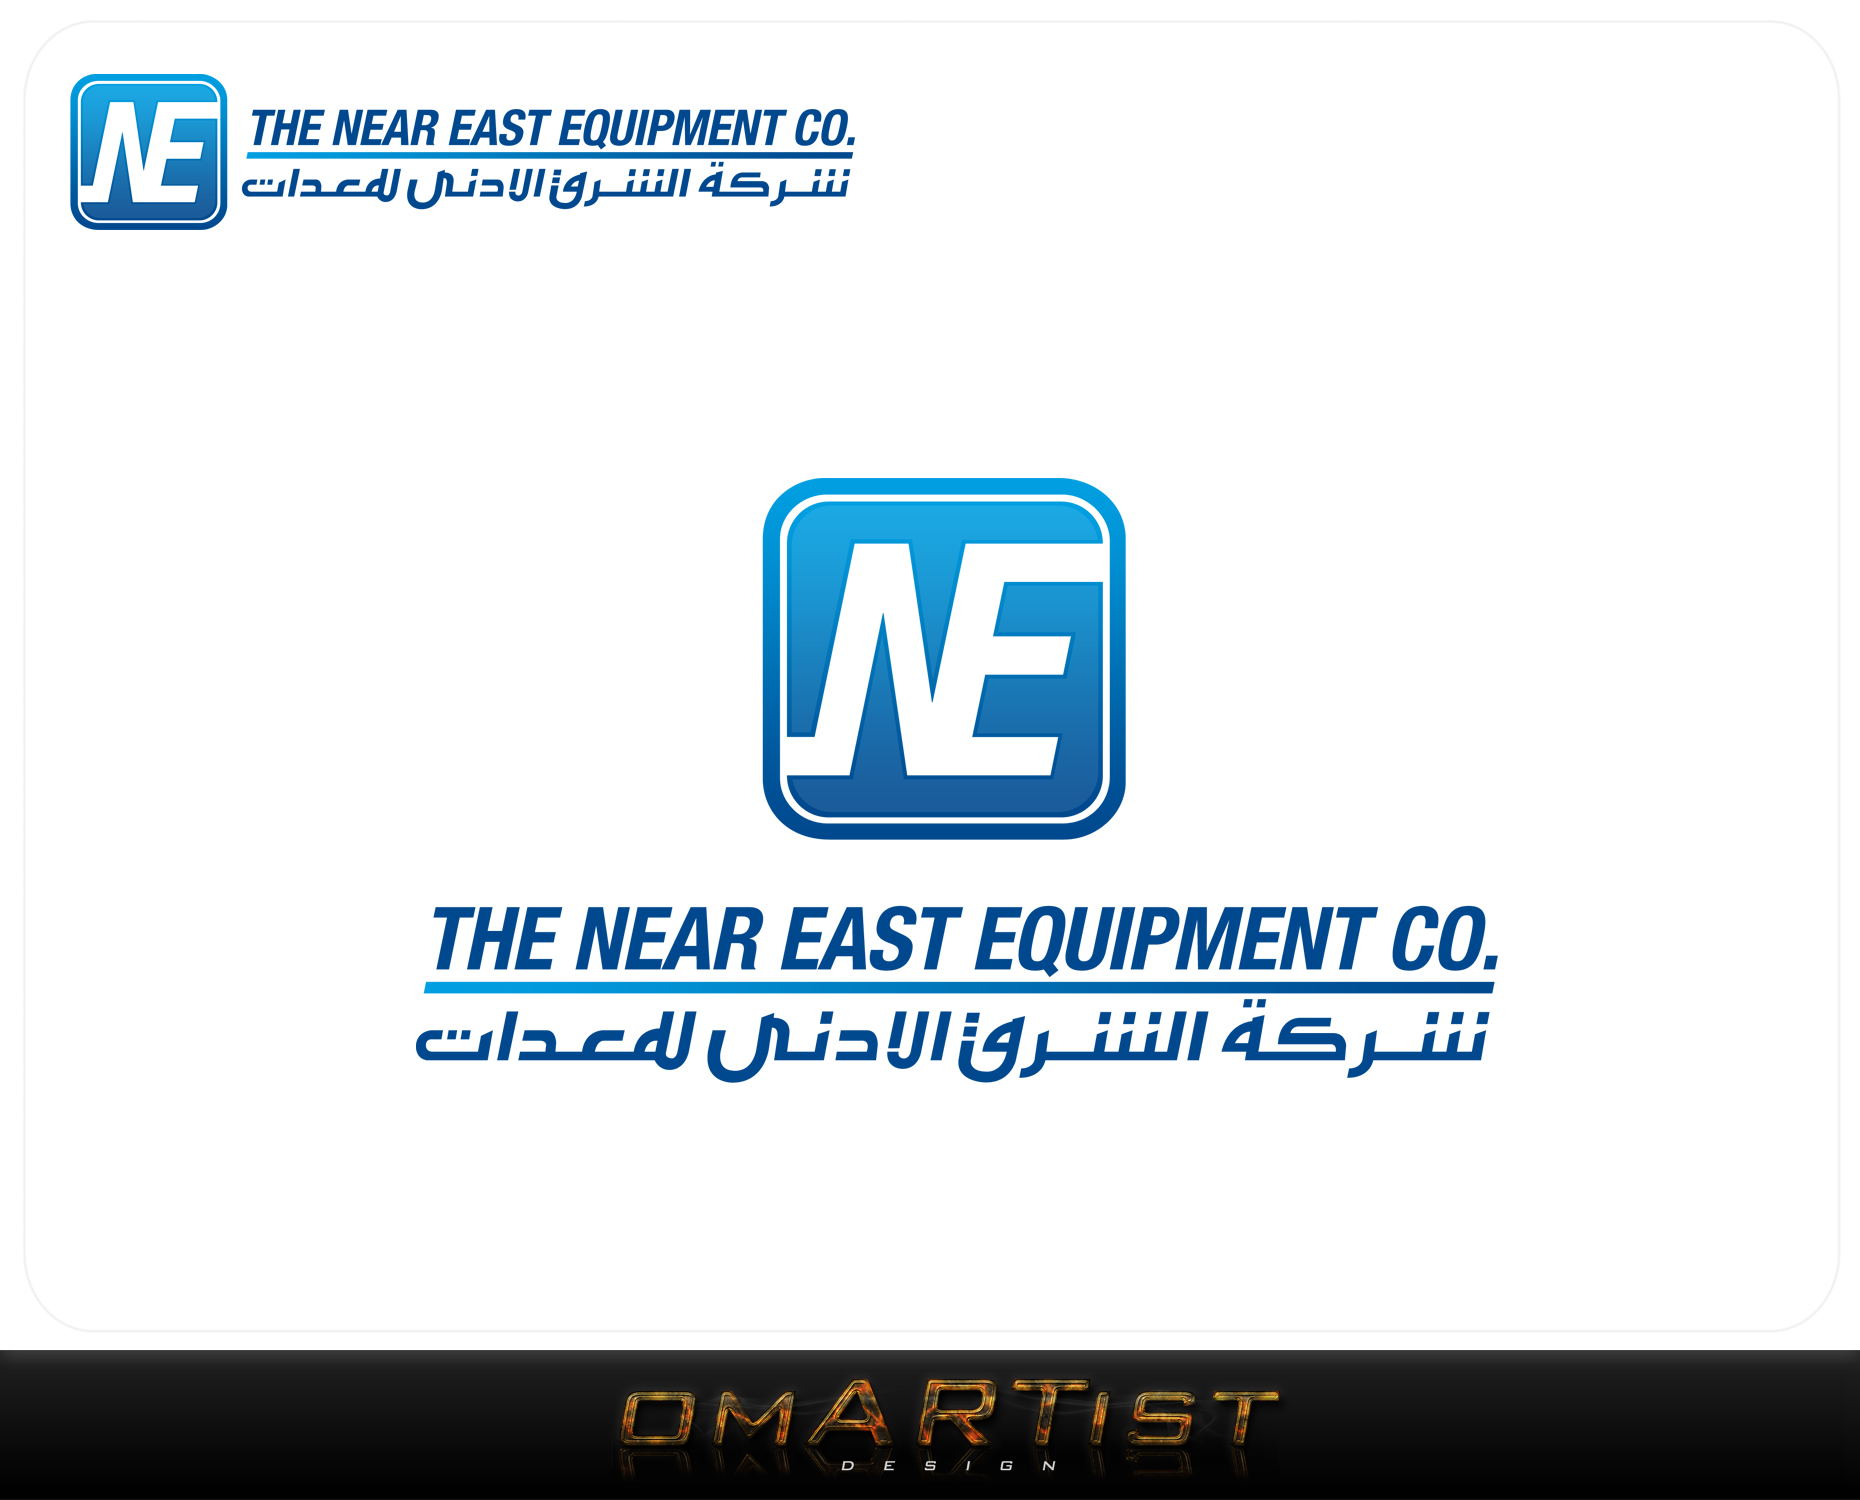 Logo Design by omARTist - Entry No. 112 in the Logo Design Contest Imaginative Logo Design for The Near East Equipment Co..